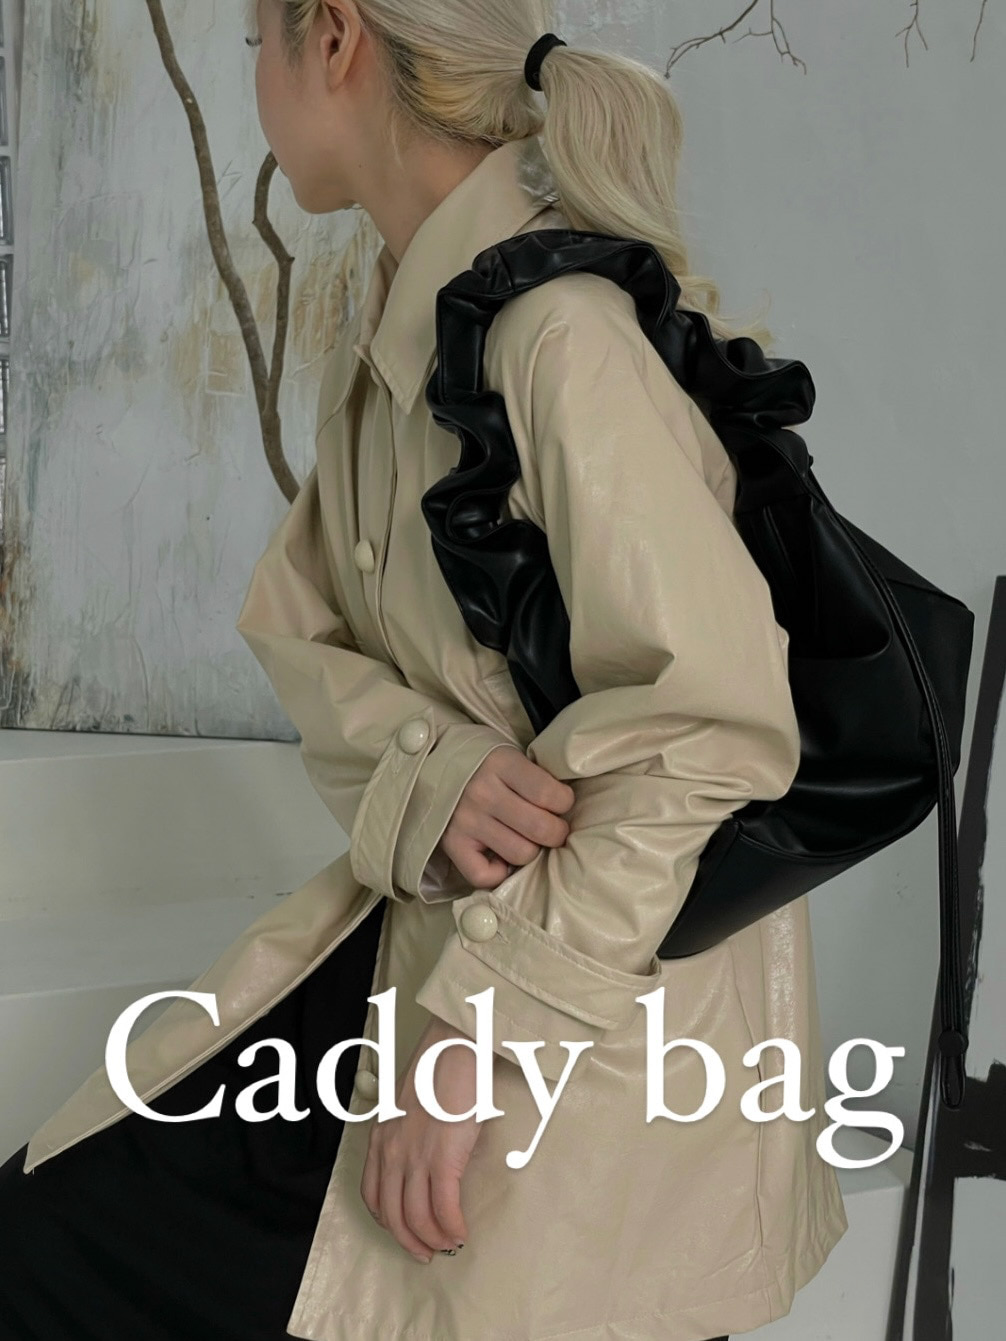 Caddy bag